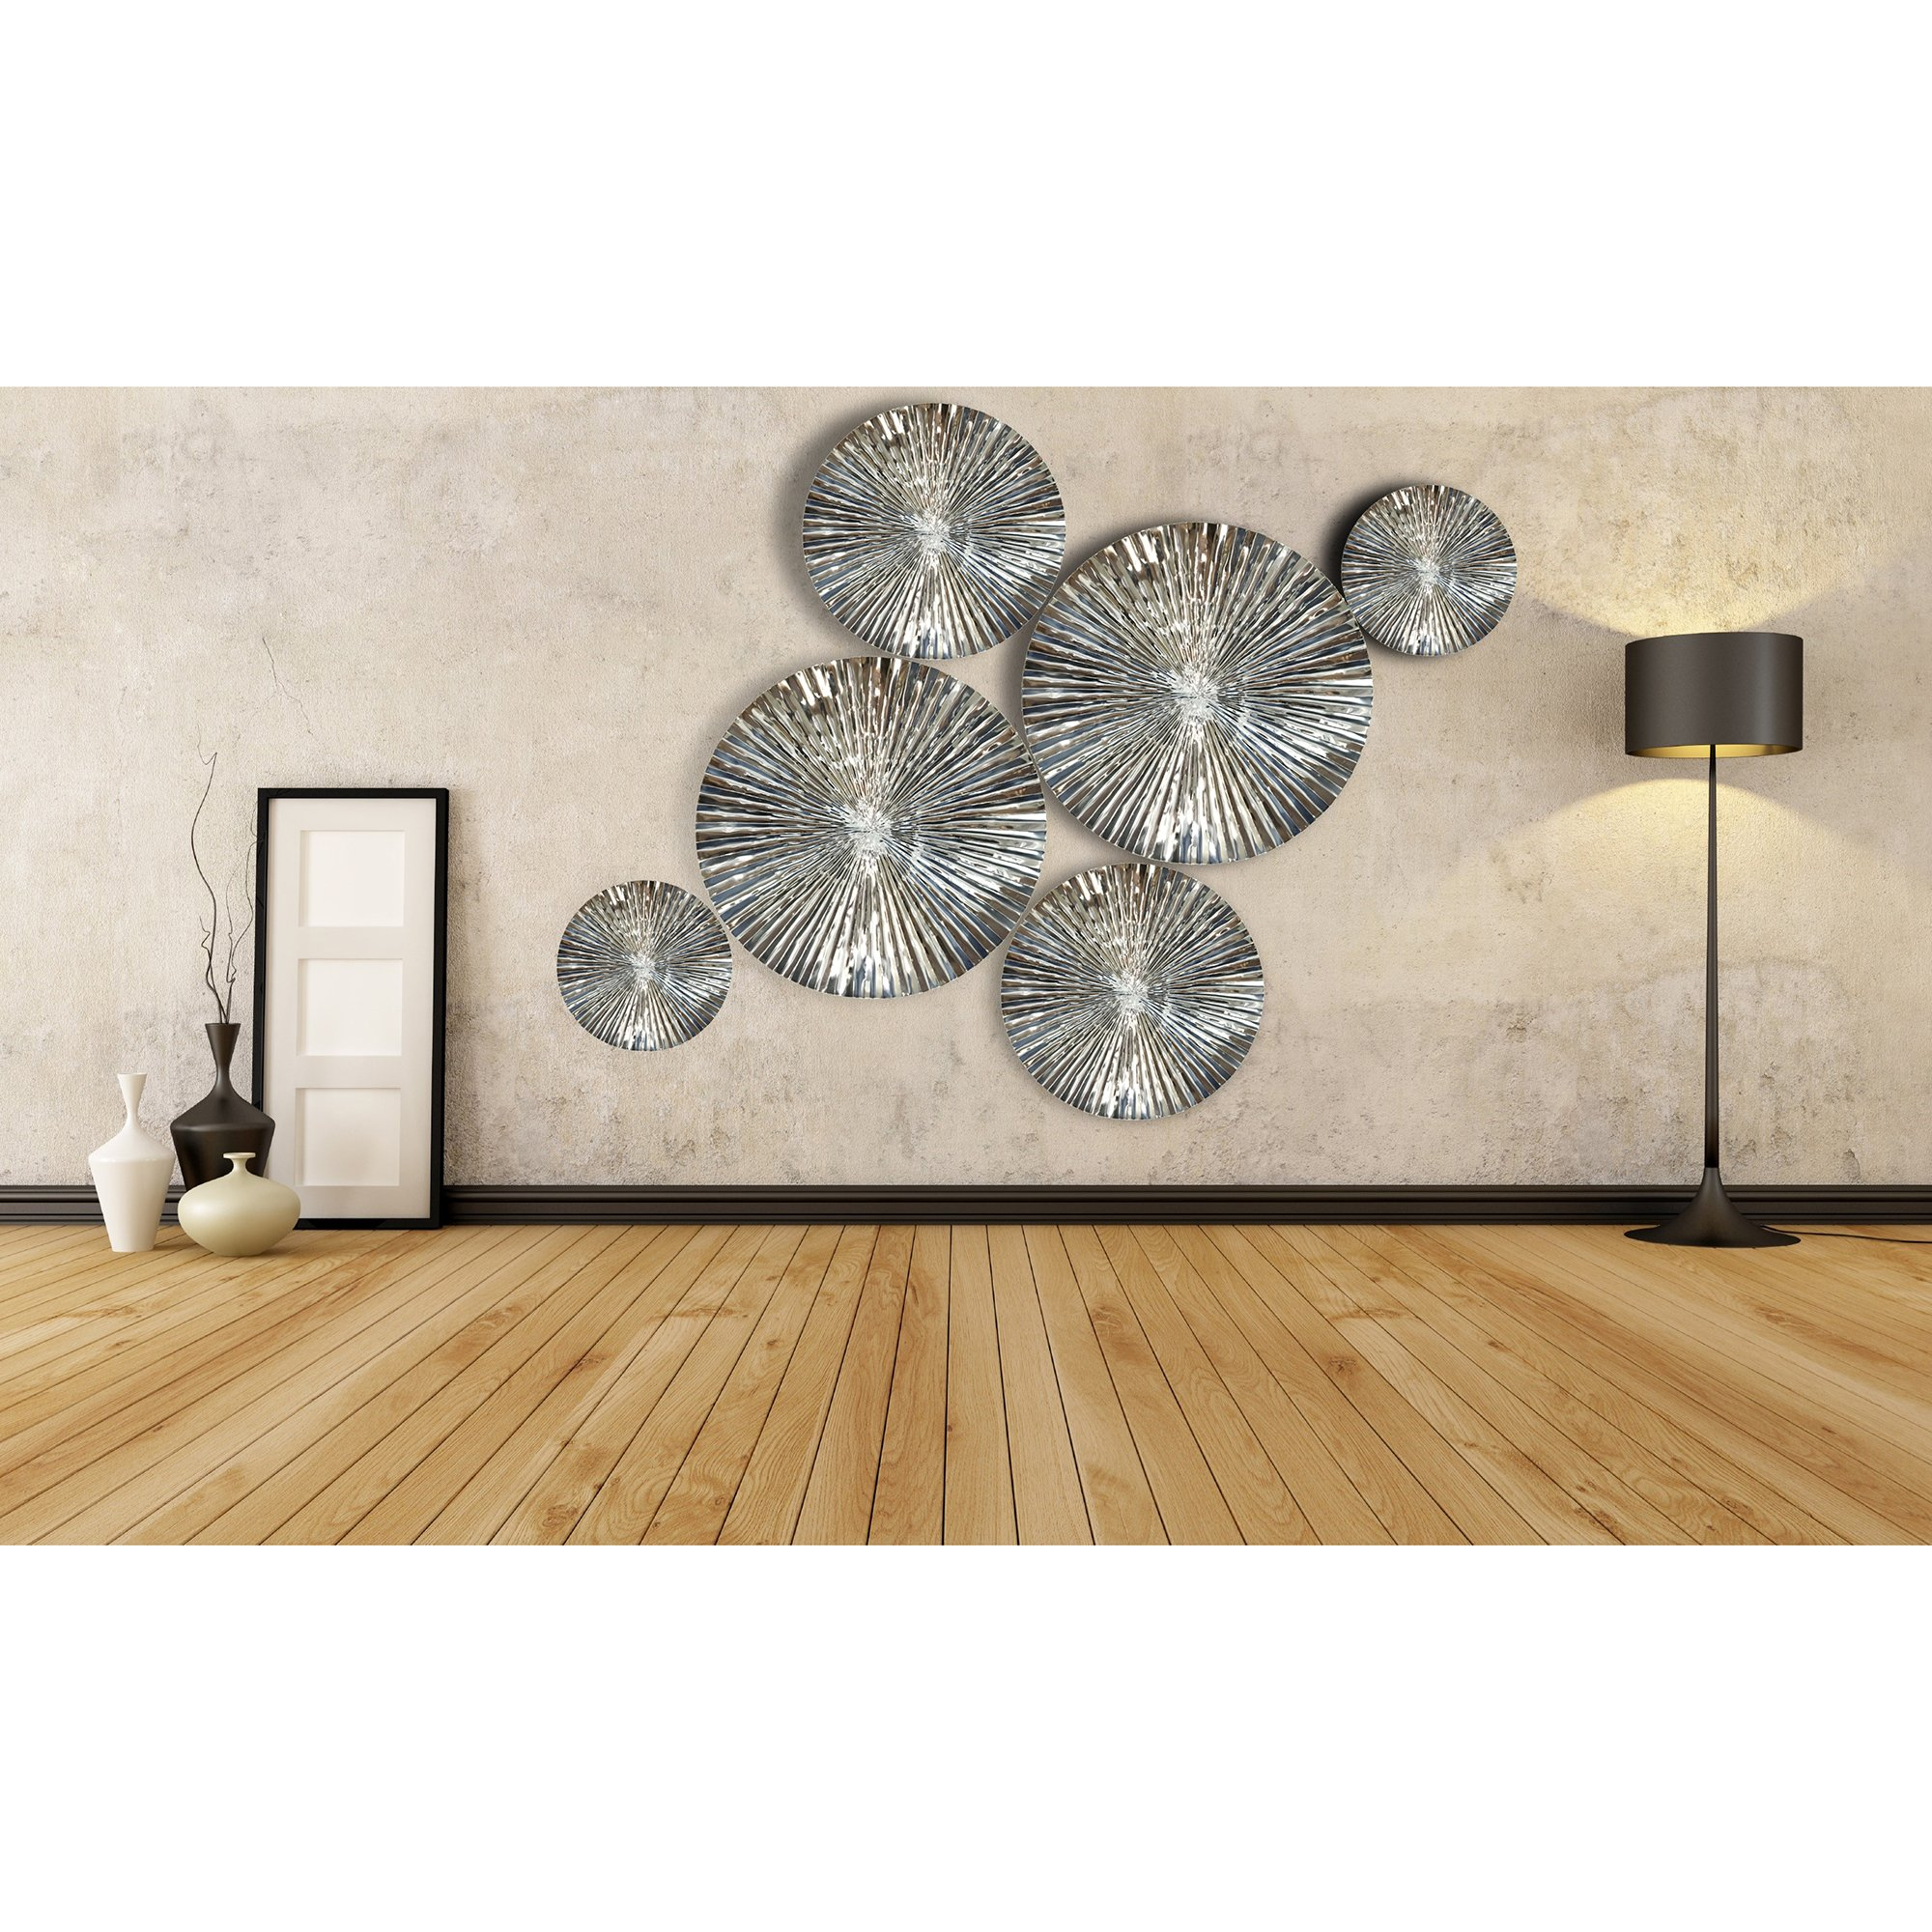 Decorlives Set of 6 pcs Mirror Finish Sunburst Aliminium Wall Sculpture Decorative Wall Hanging Art